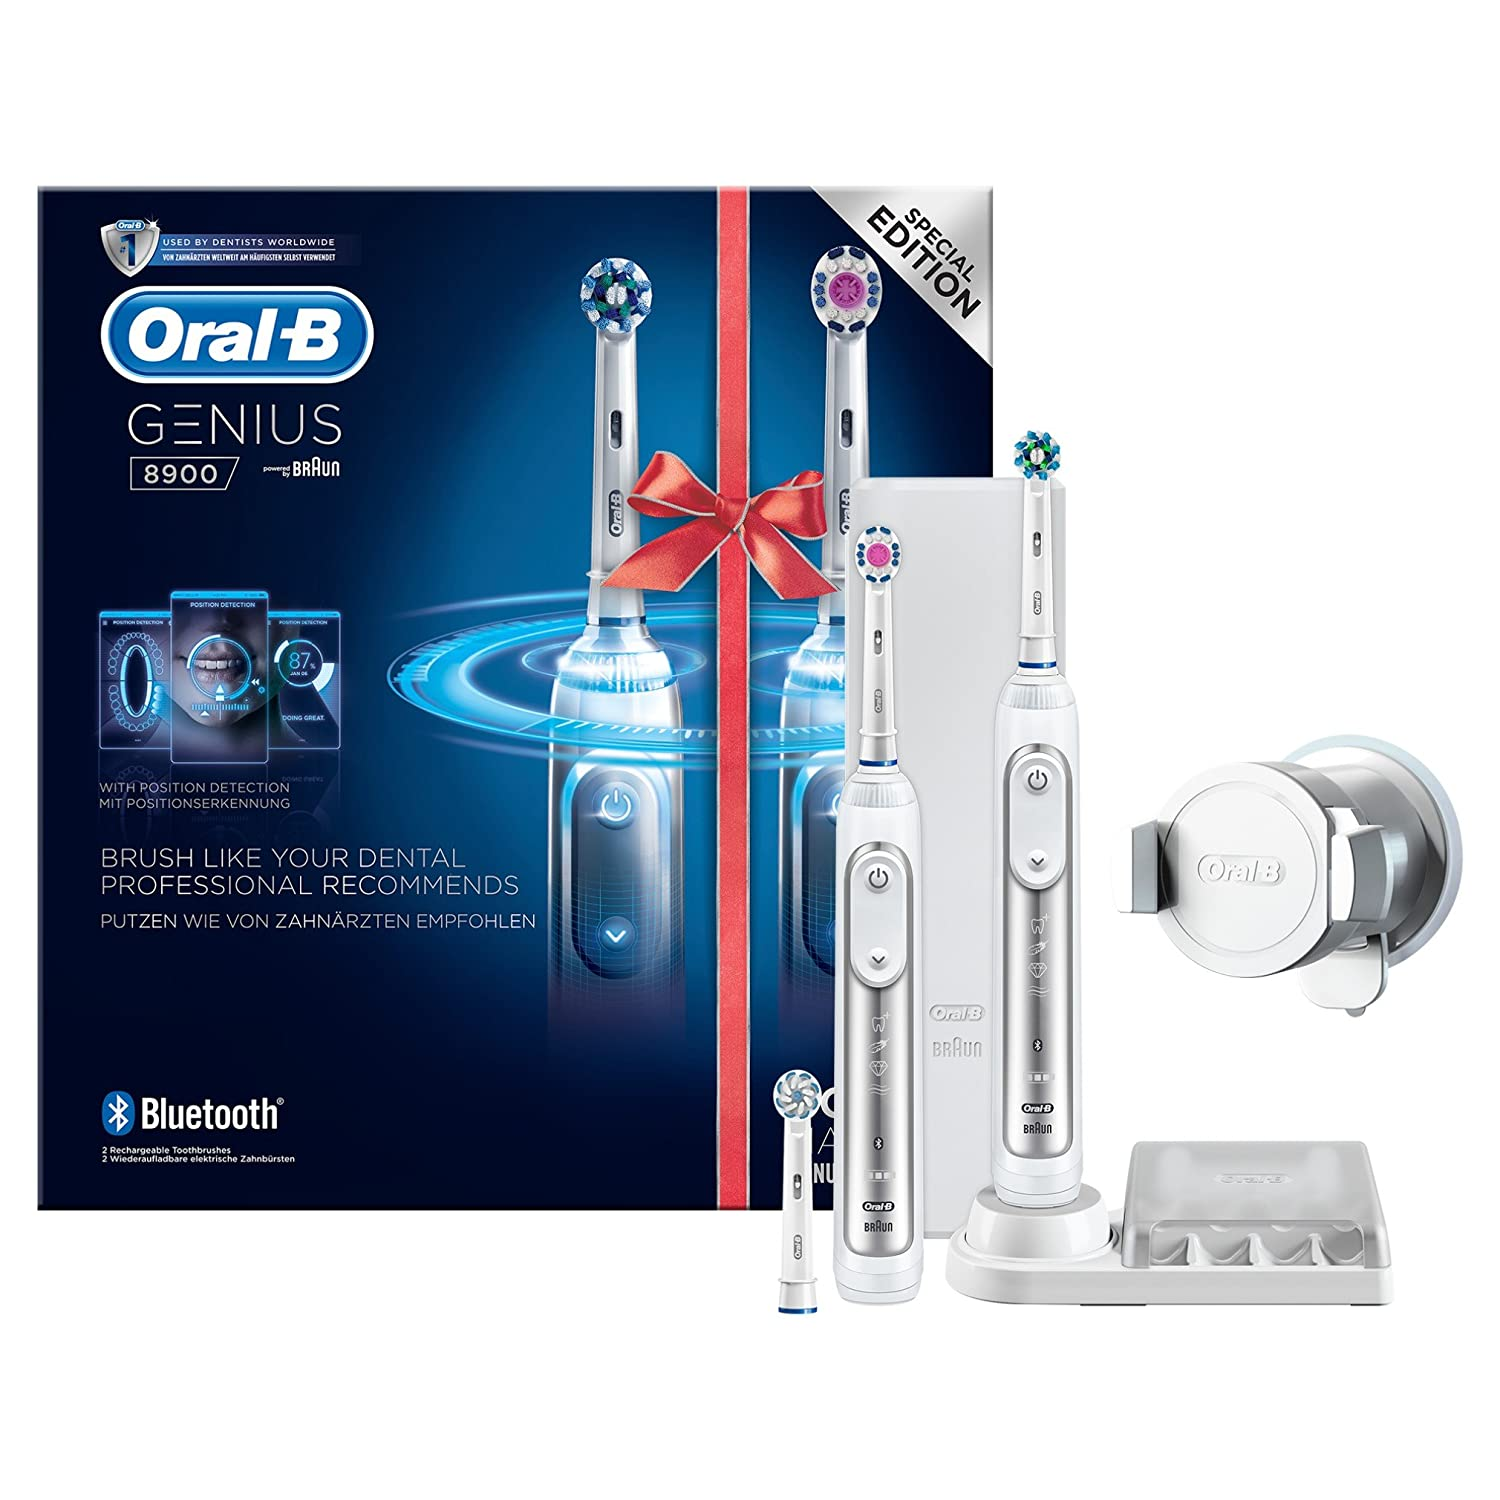 Details about Oral B Genius 8900 Set of 2 Electric Rechargeable Toothbrushes App Connected